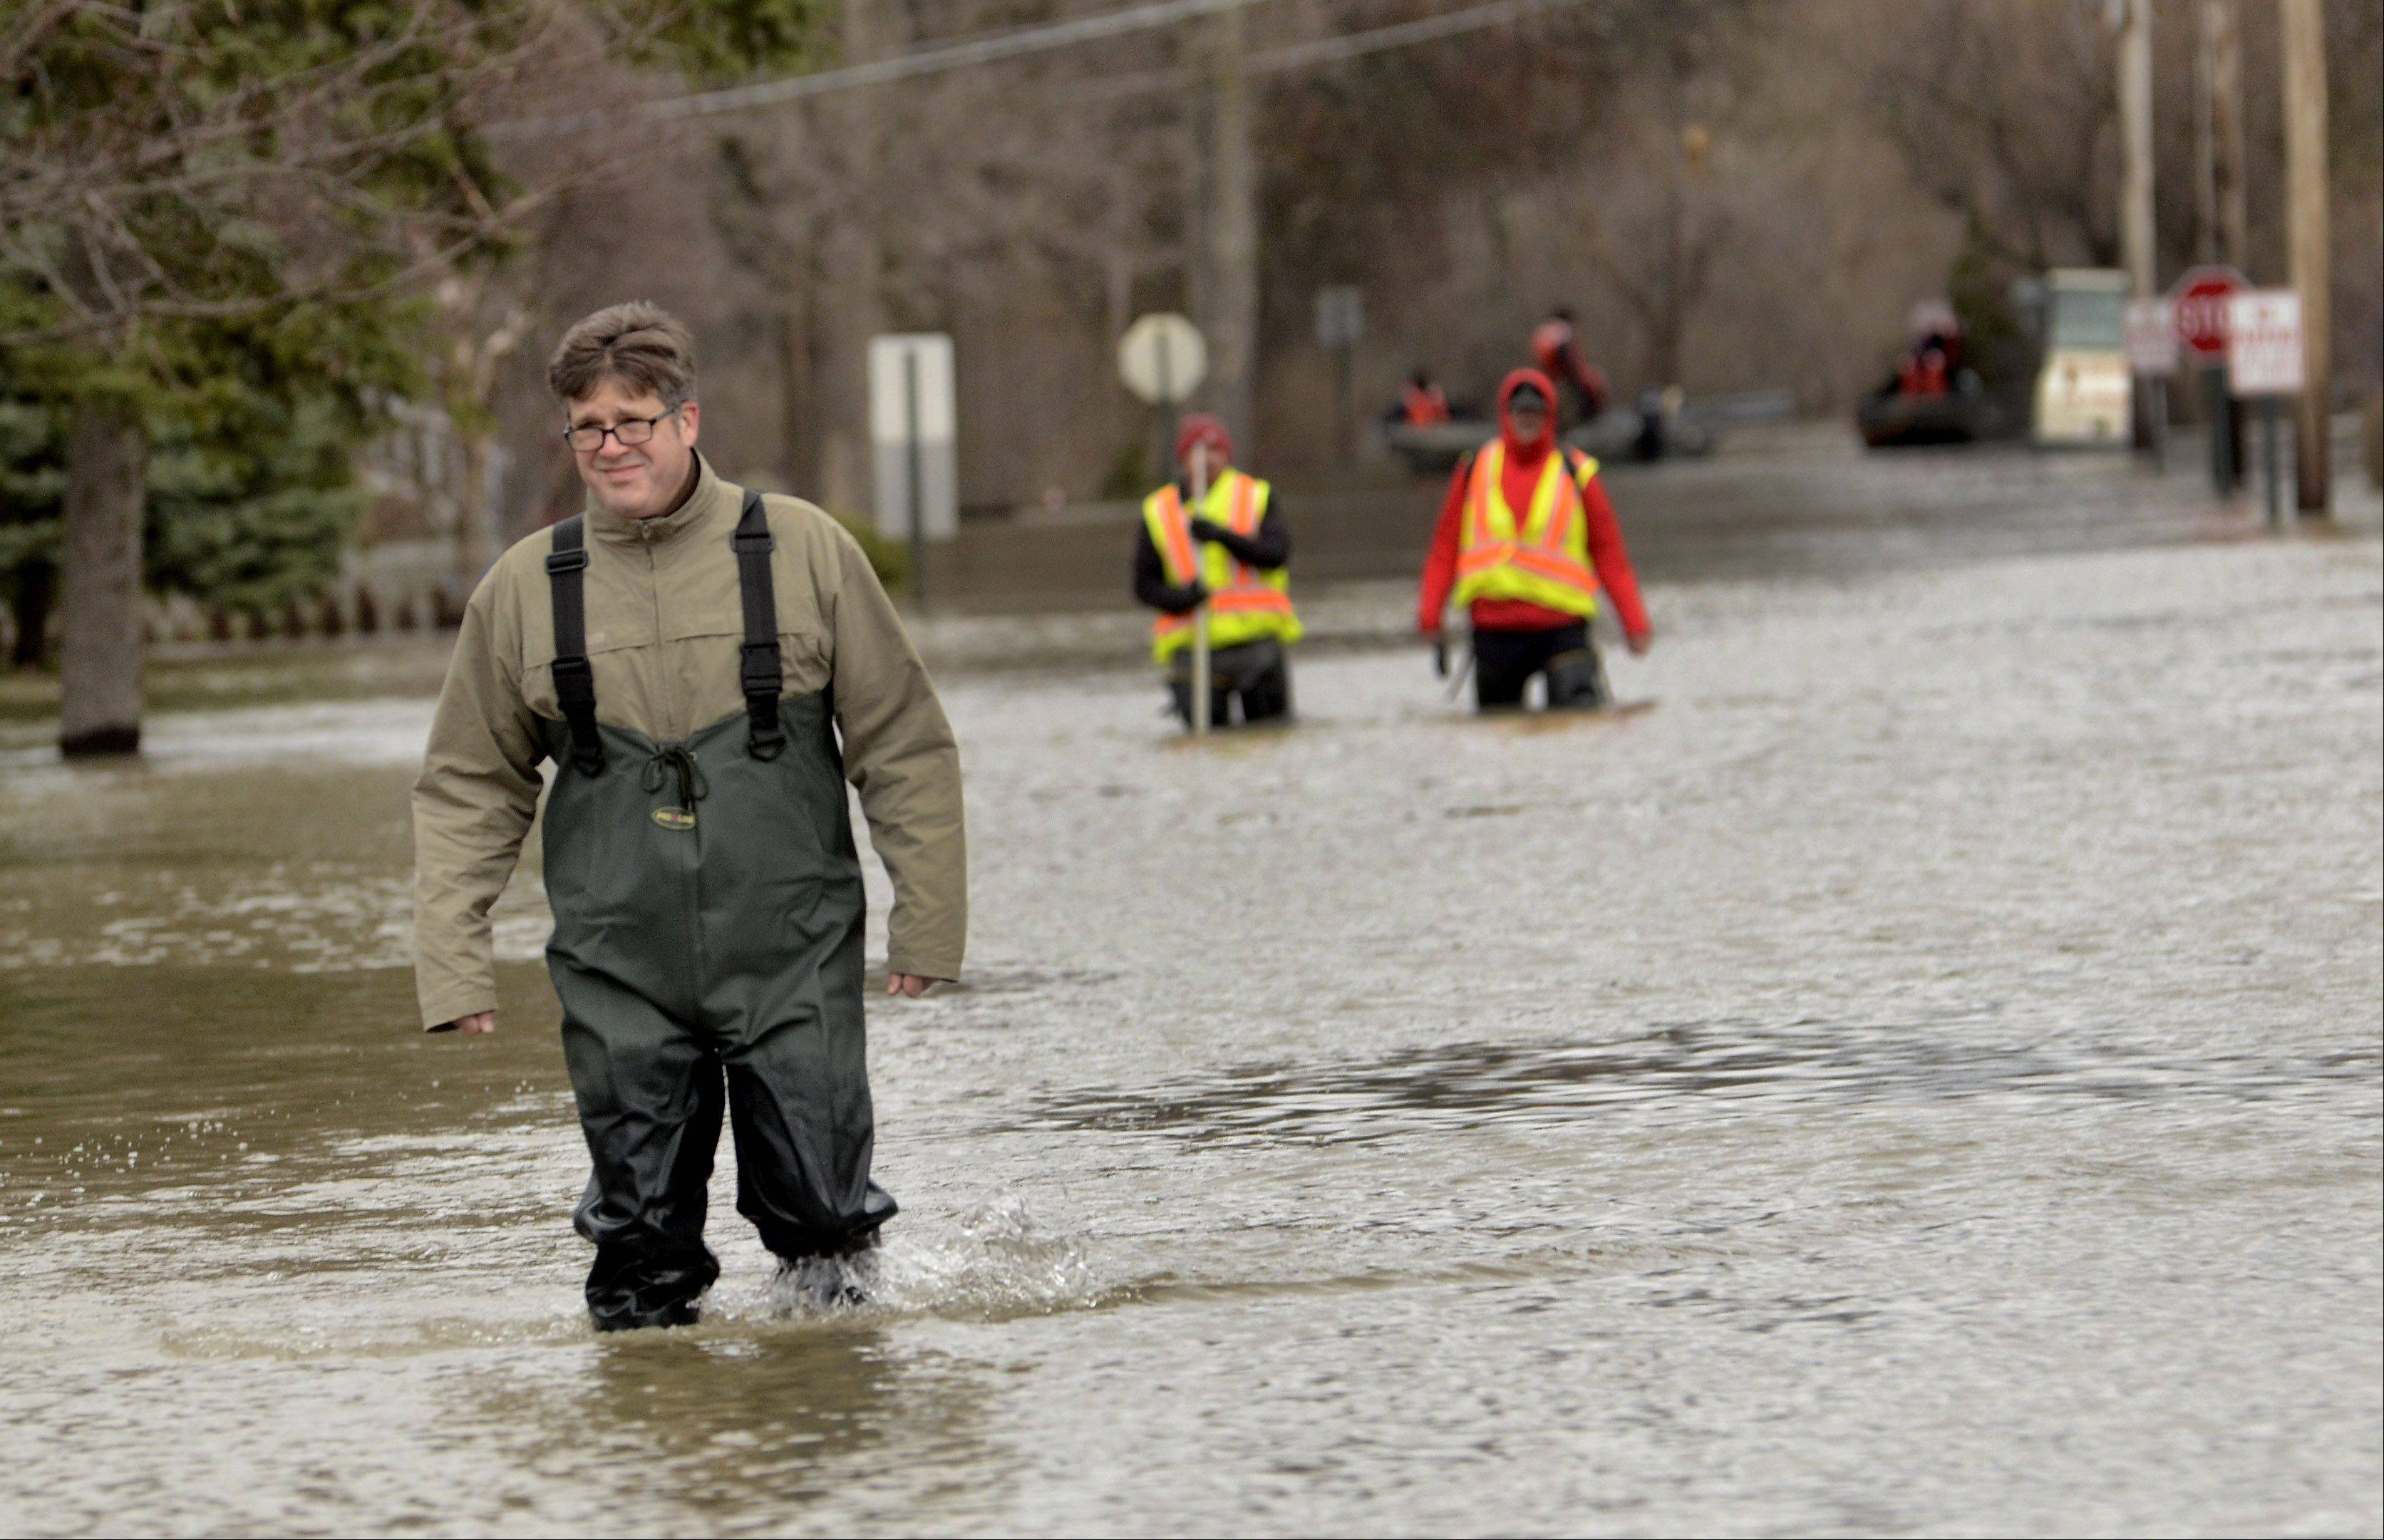 Des Plaines River receding; officials describe evacuation